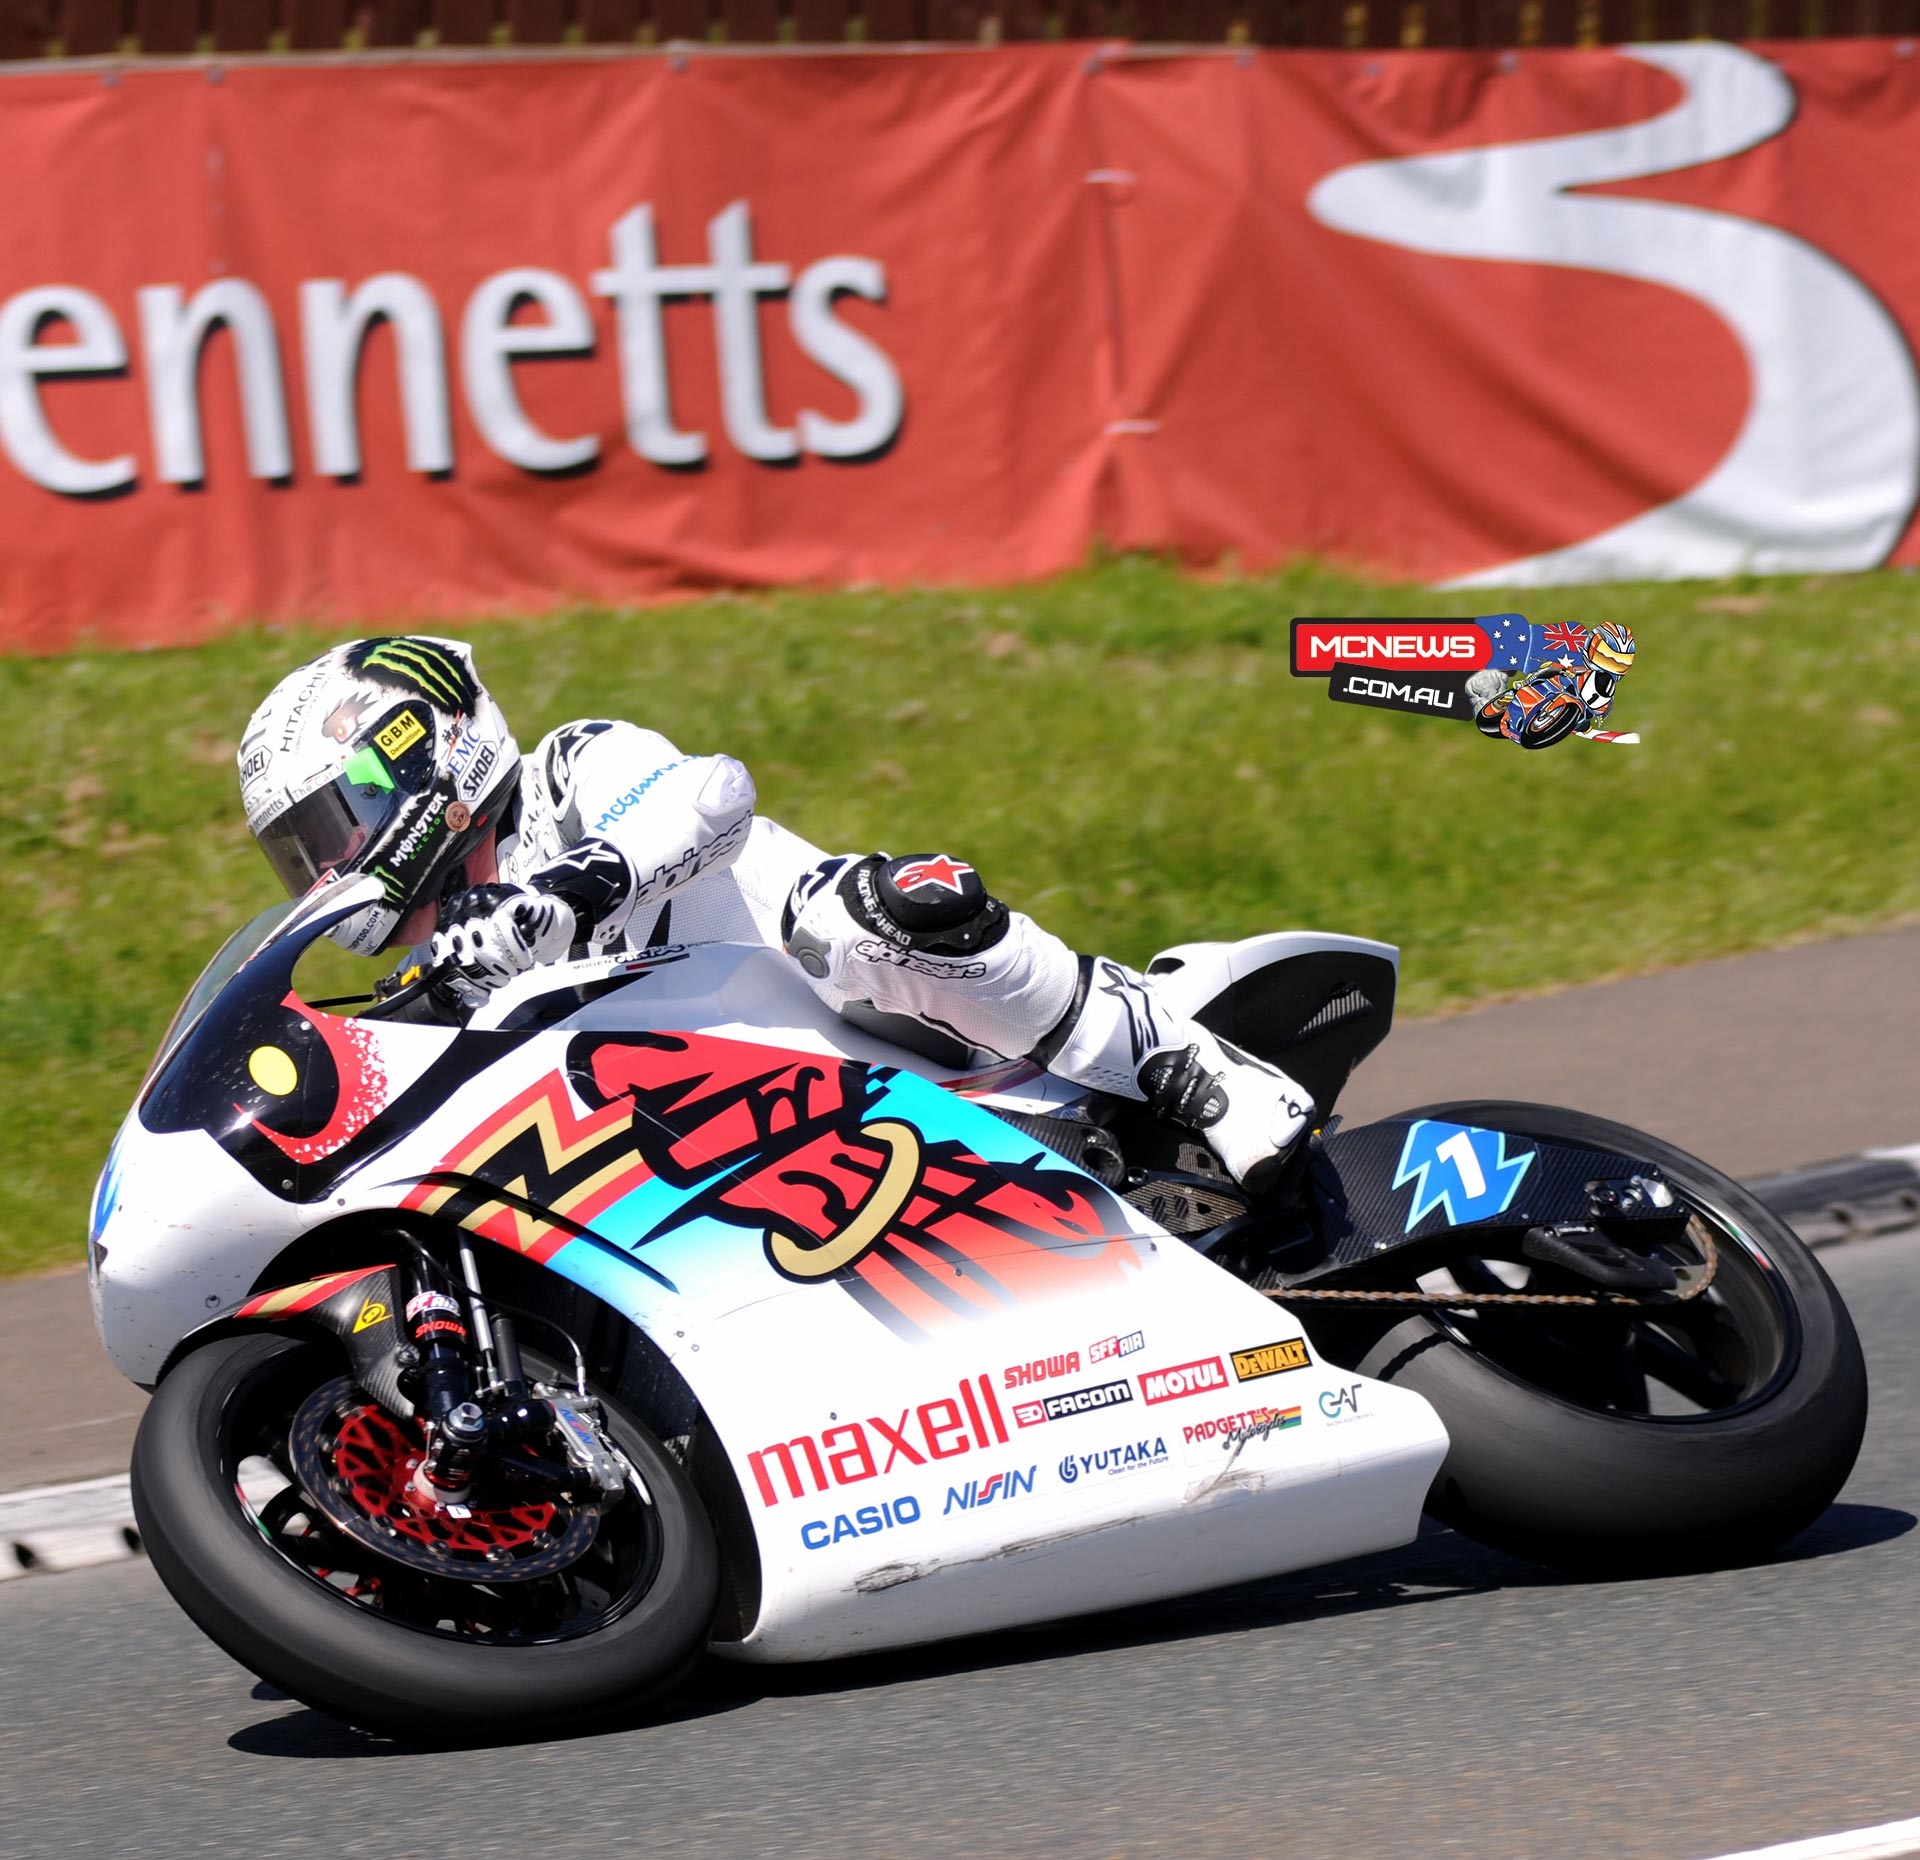 John McGuinness pushes the Mugen entry to a 119.279mph lap in the 2015 SES TT Zero challenge. Credit Pacemaker Press Intl.